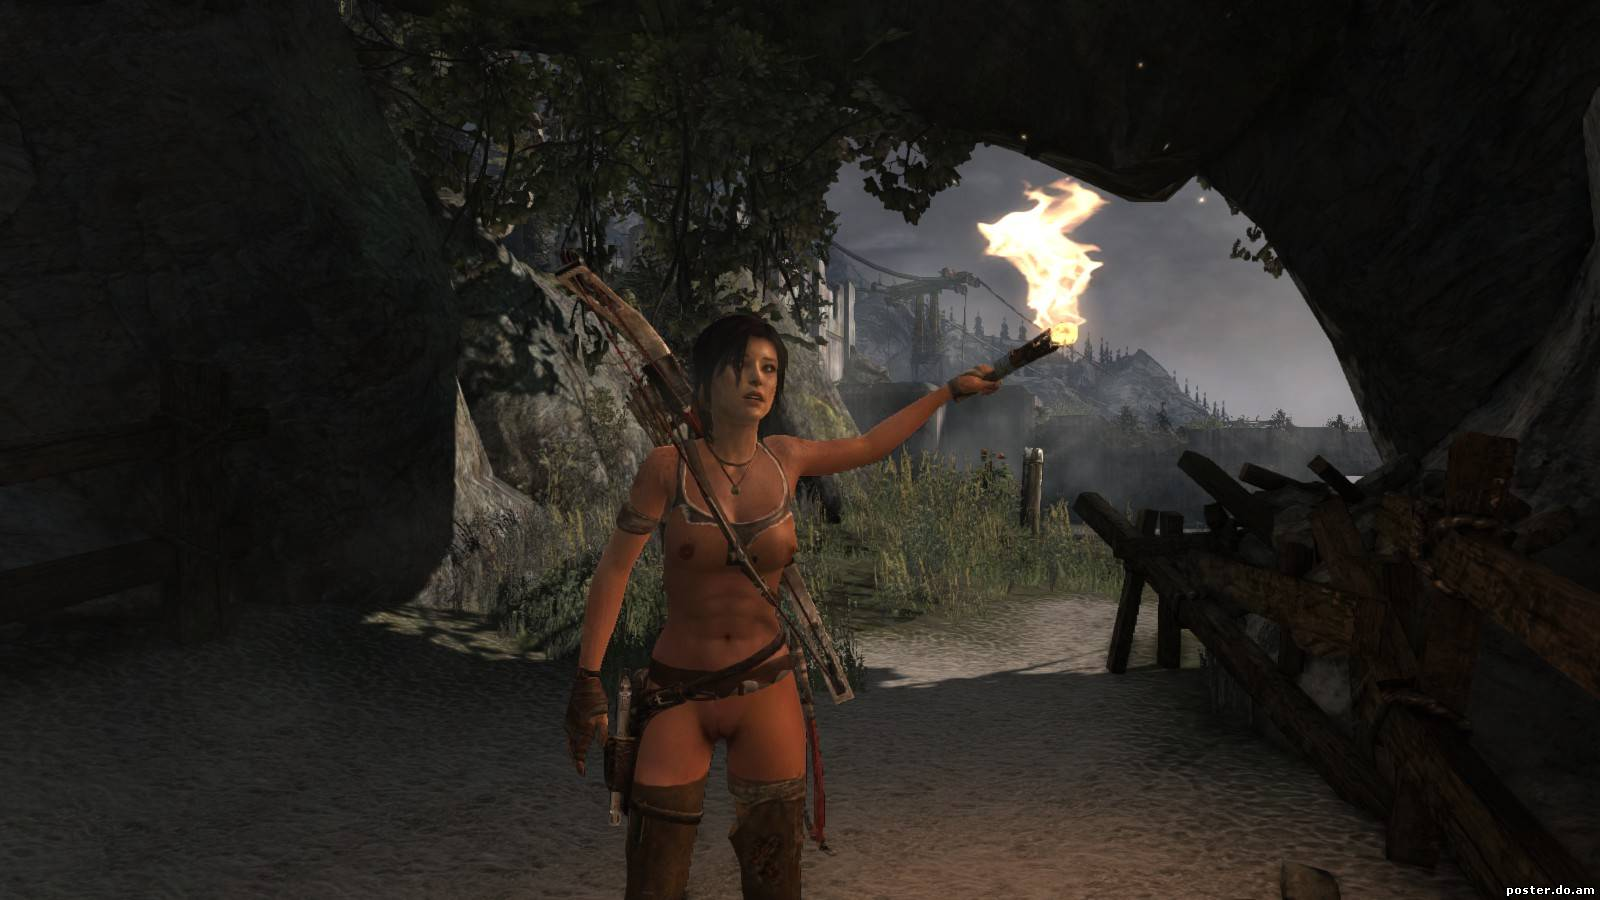 Nude patch mod tomb raider adult images